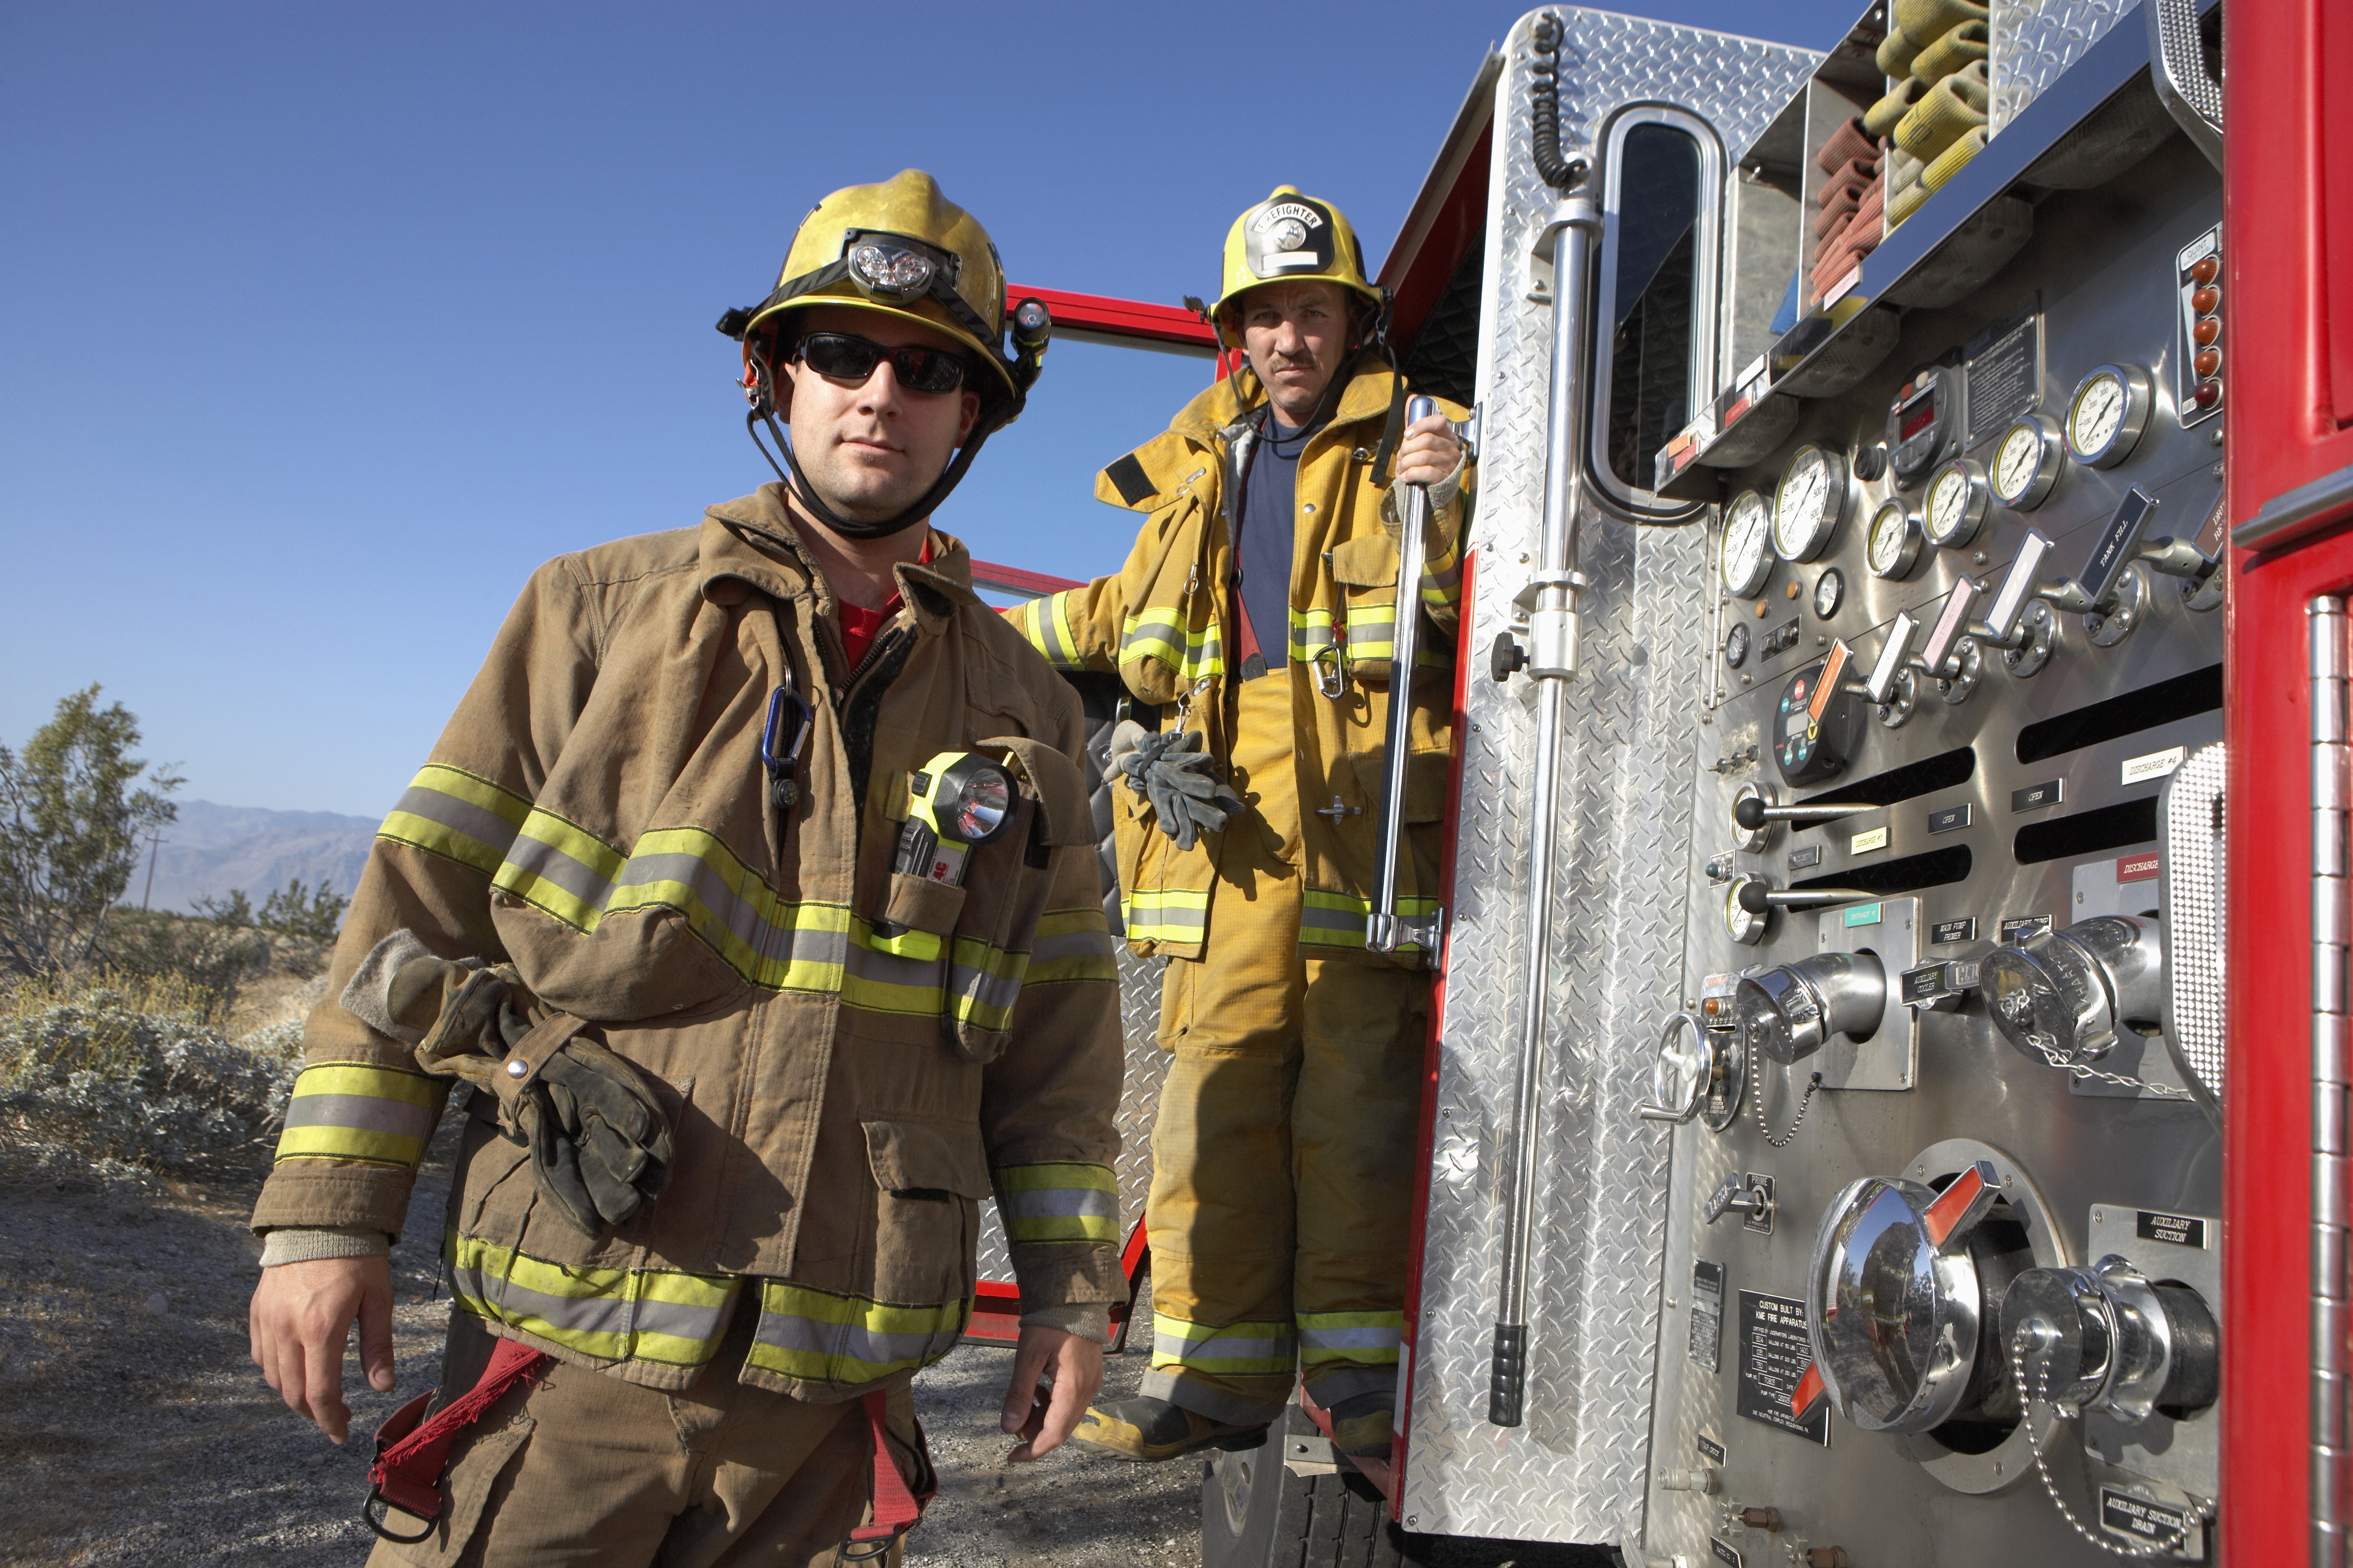 Color Blind Firefighters Color Vision Correction